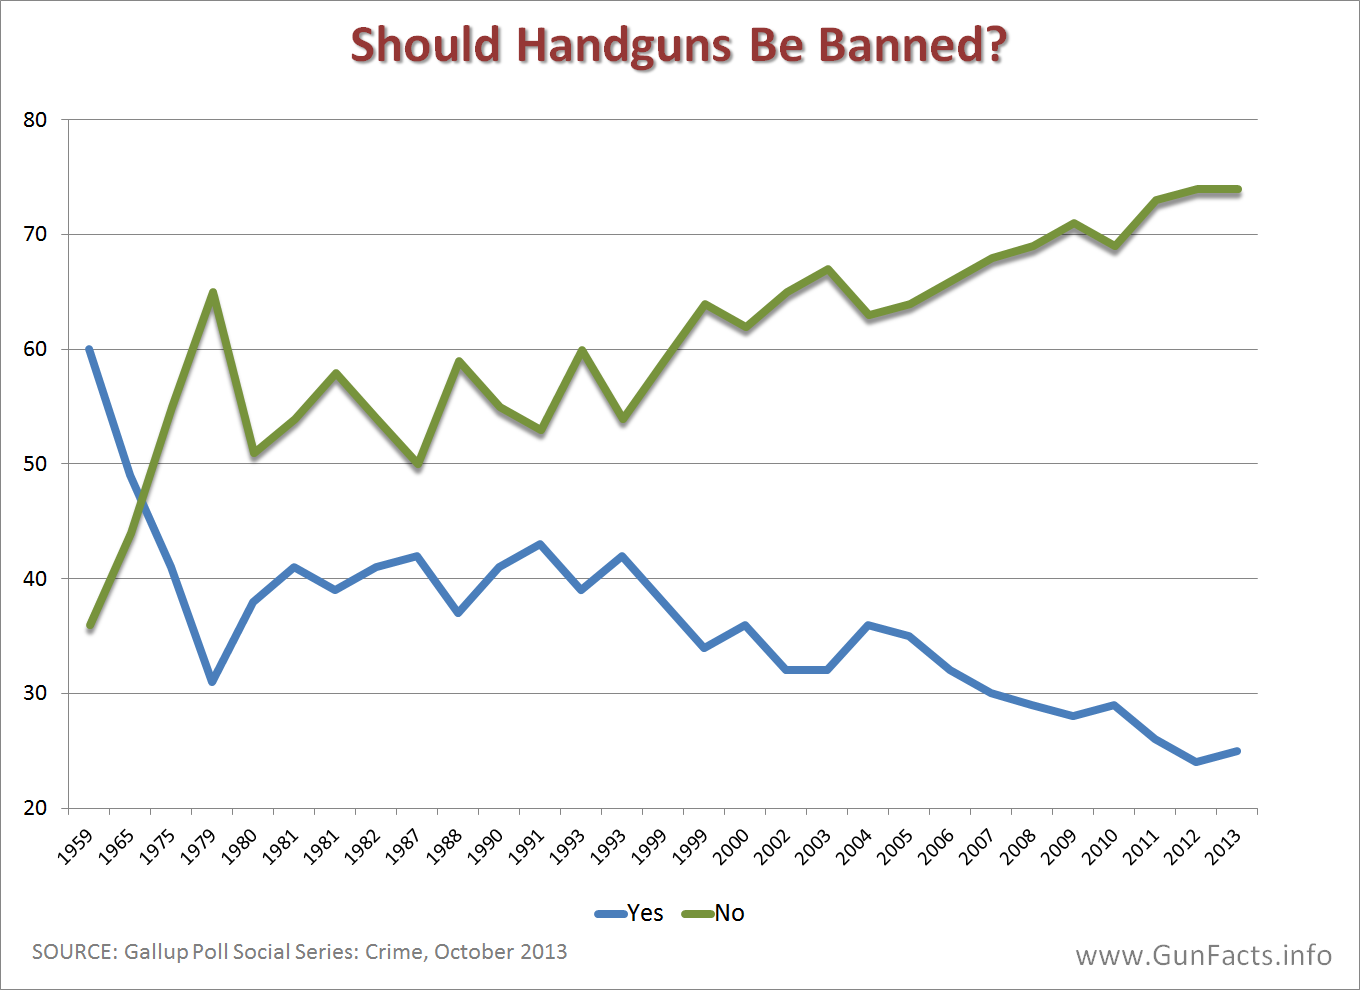 Here are the gun control policies that majorities in both parties support